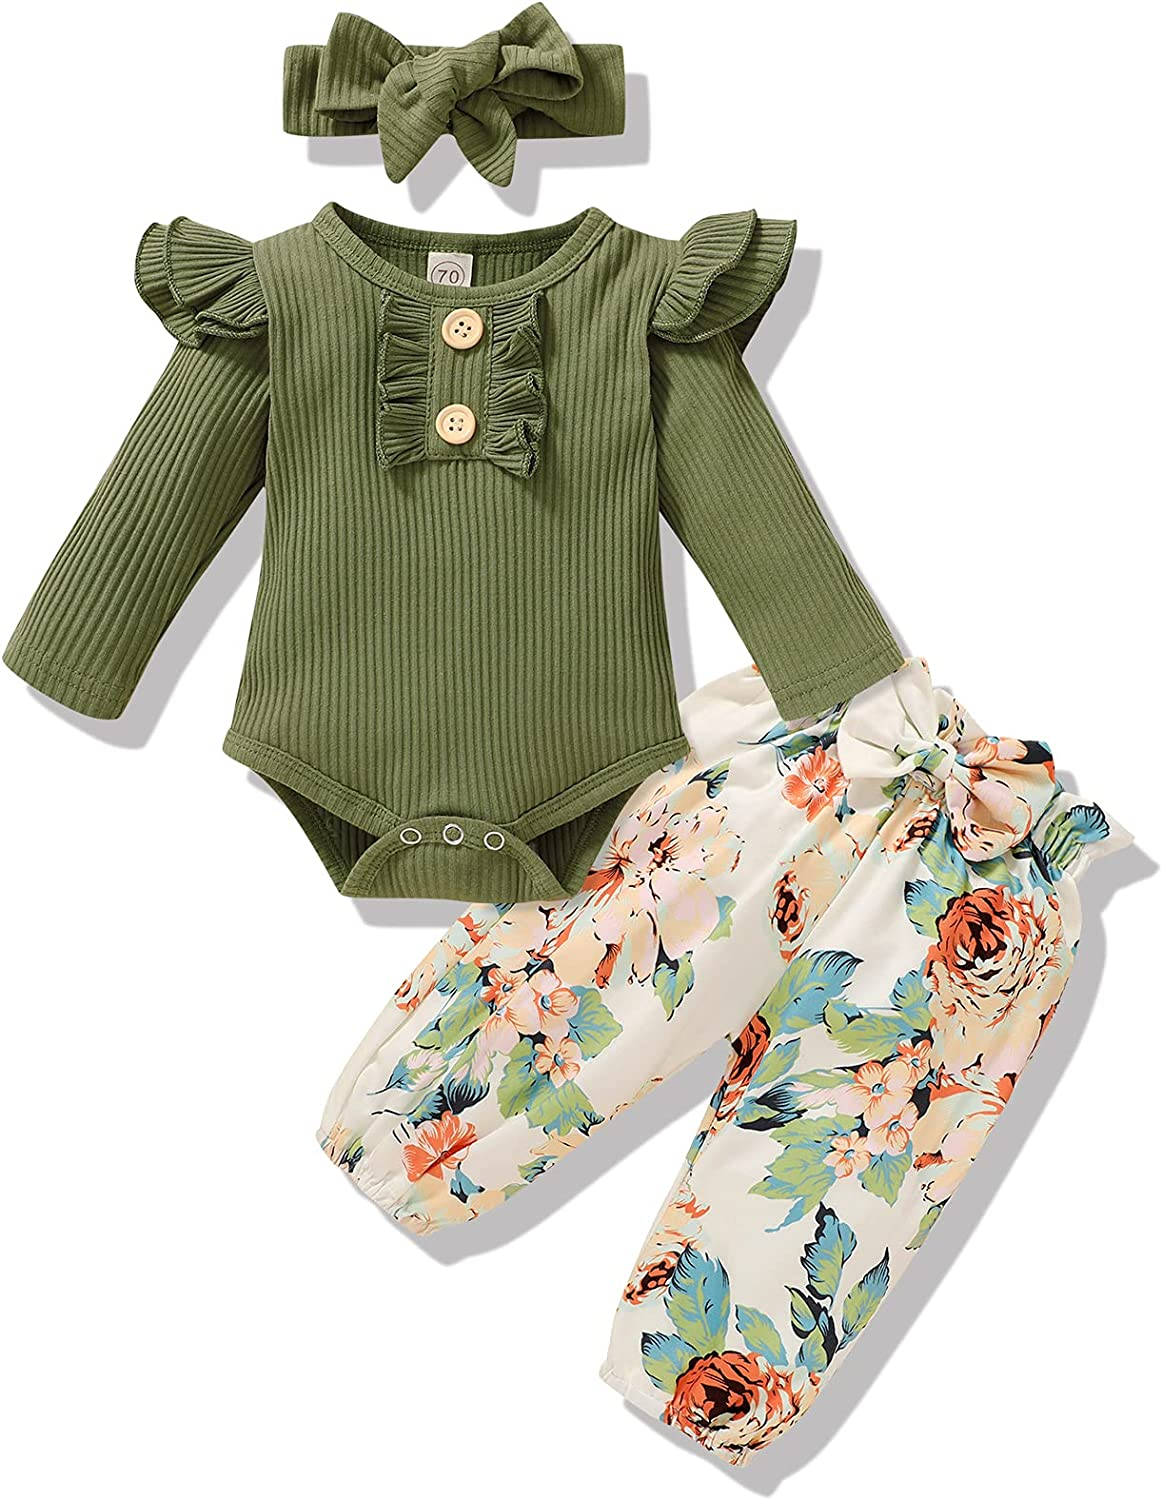 Infant Newborn Baby Girl Clothes Long Sleeve Ruffled Romper and Floral Bowknot Pants Headband 3PCS Fall Outfit 0-12M